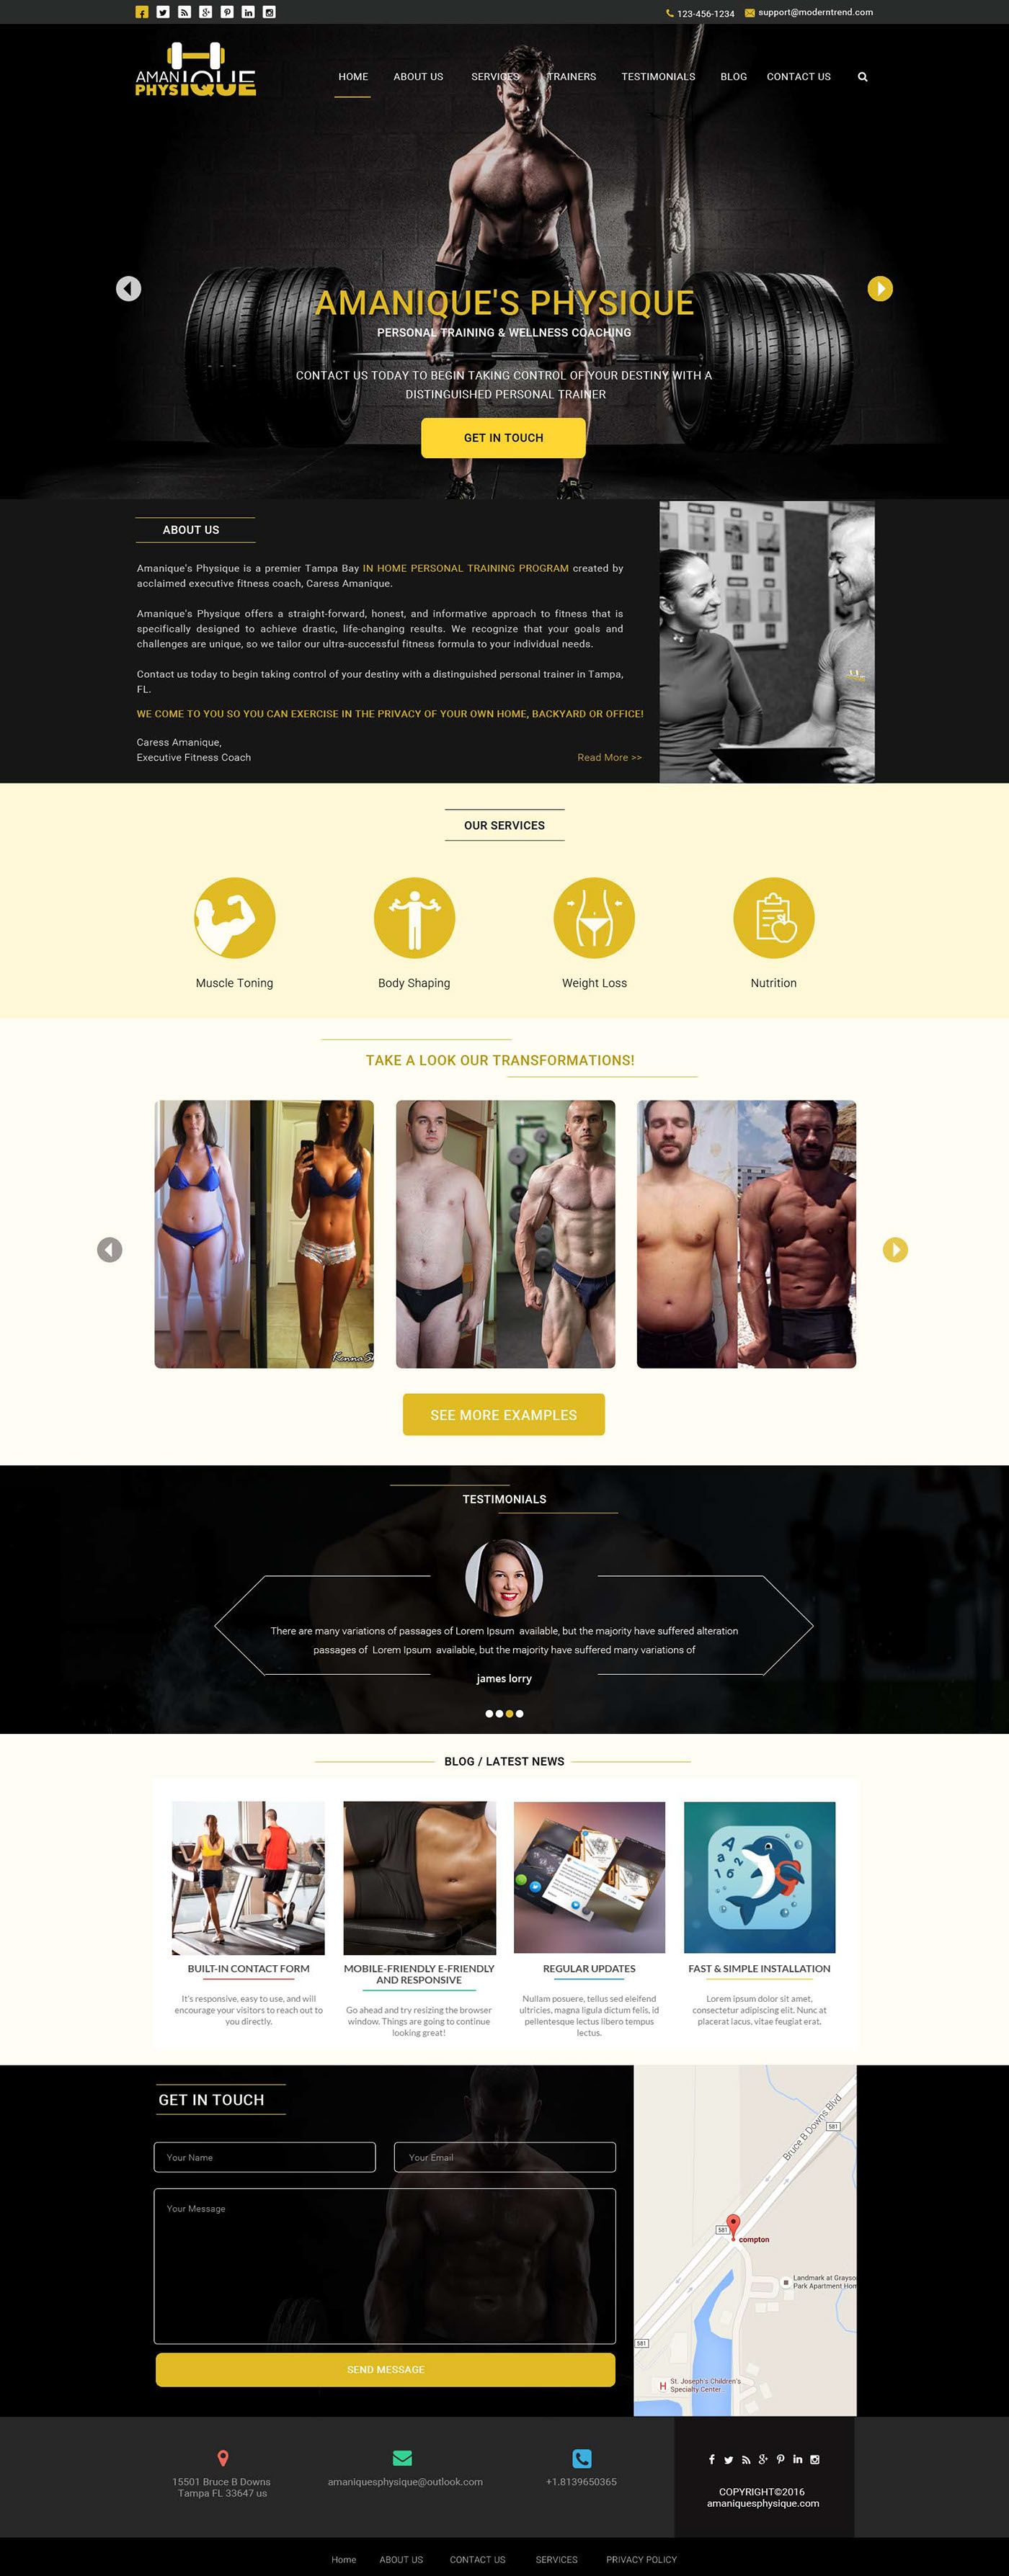 Check out my behance project gym trainer website psd mockup check out my behance project gym trainer website psd mockup https xflitez Image collections